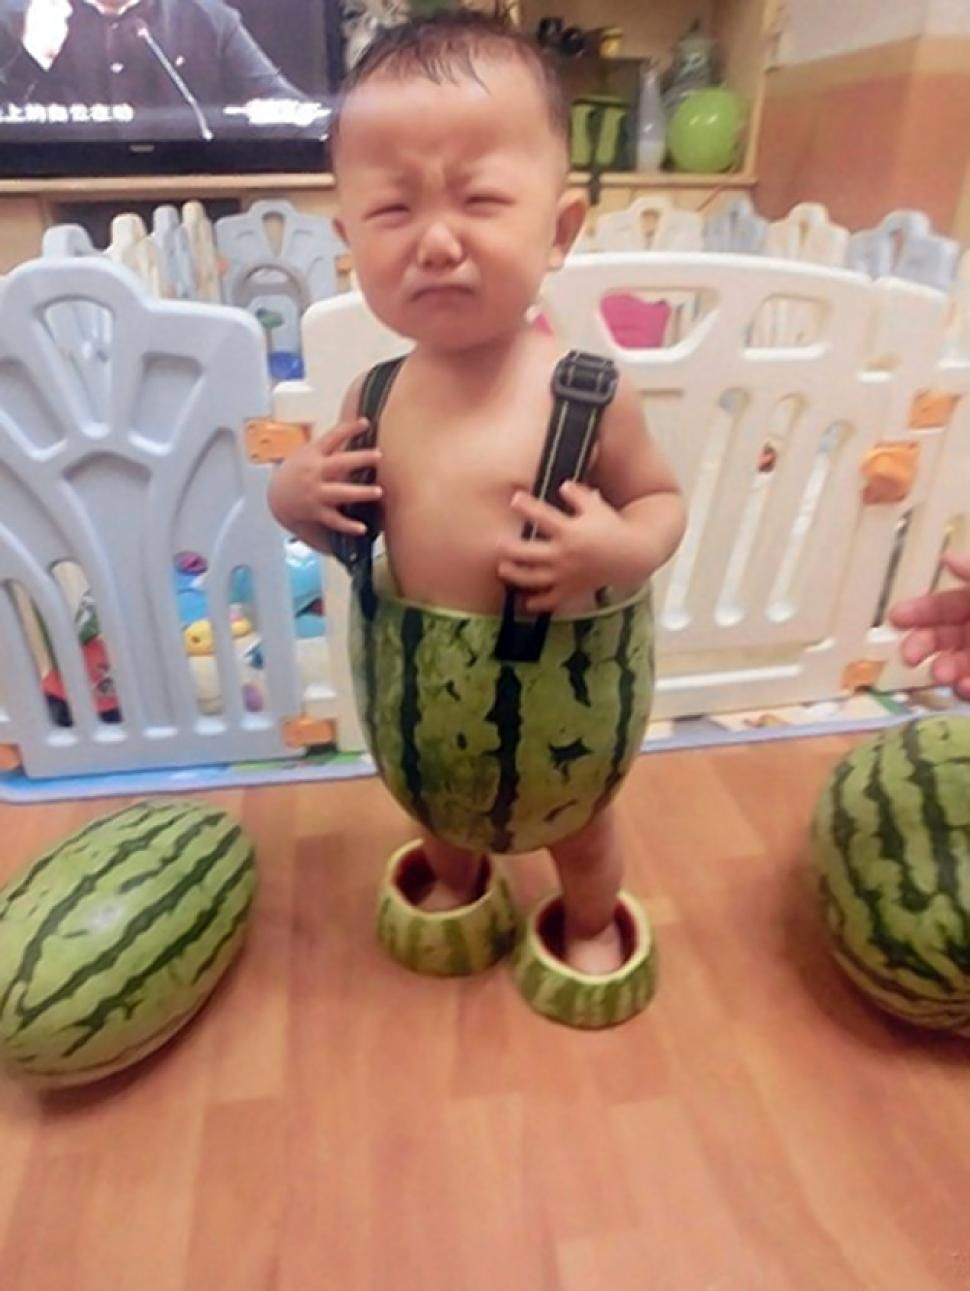 Photos Of A Baby Wearing Watermelon Pants Go Viral Ny Daily News